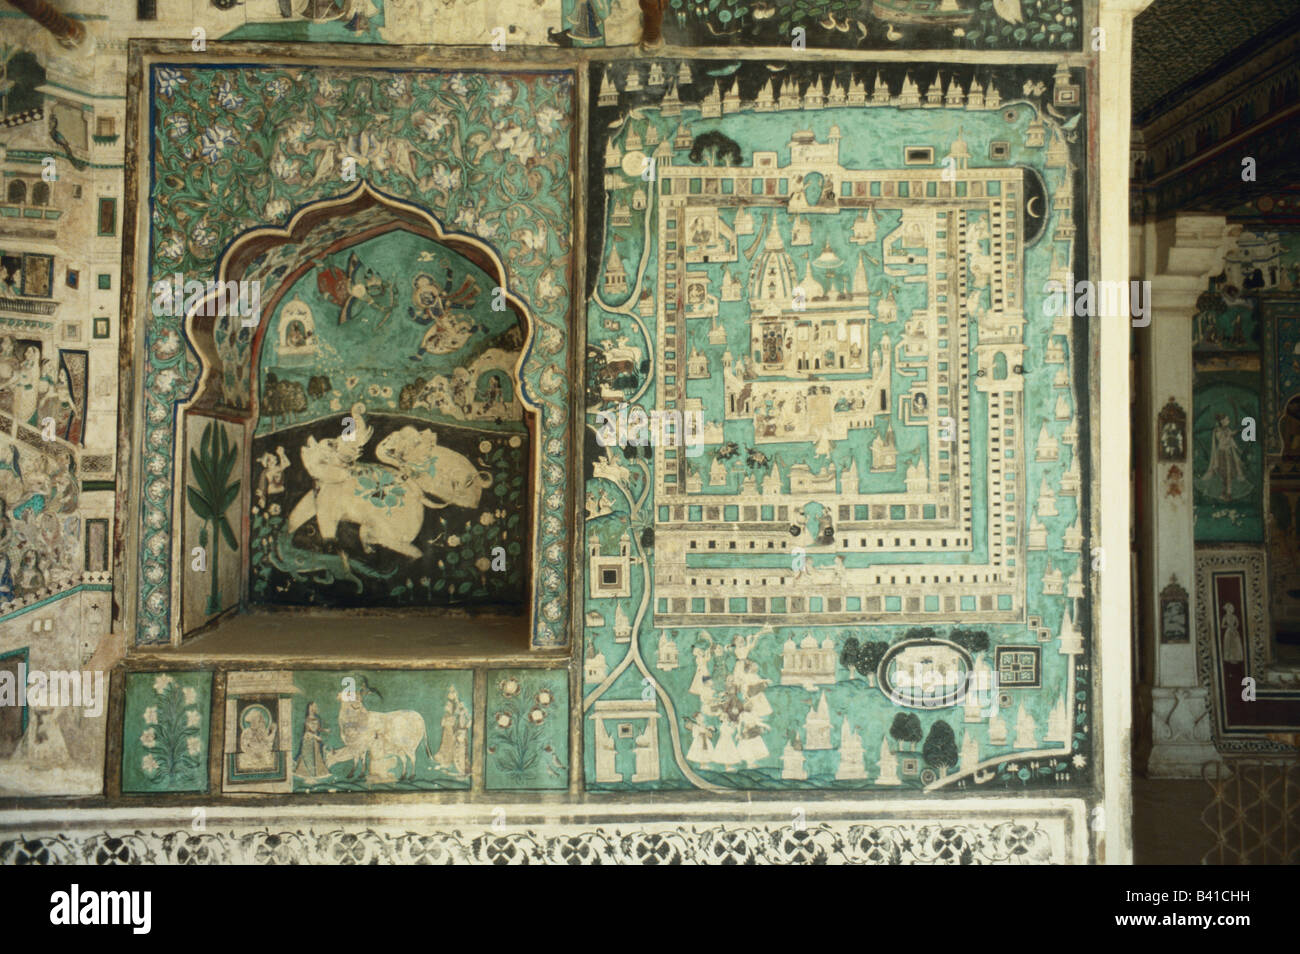 frescoes of stories painted for princesses at bundi fort palace rajasthan india - Stock Image